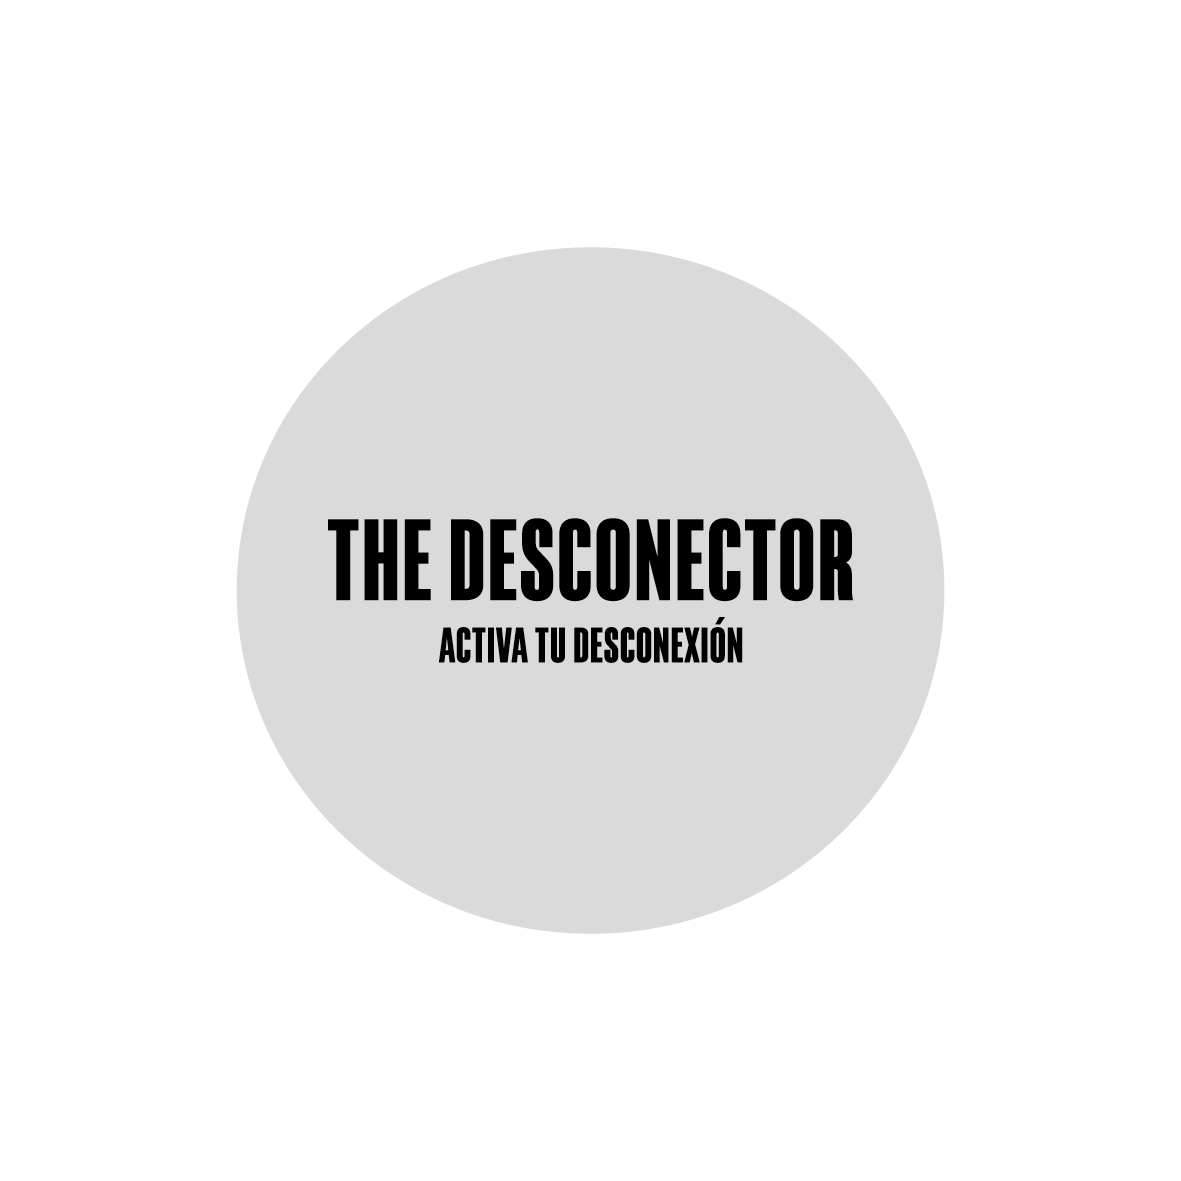 The desconector